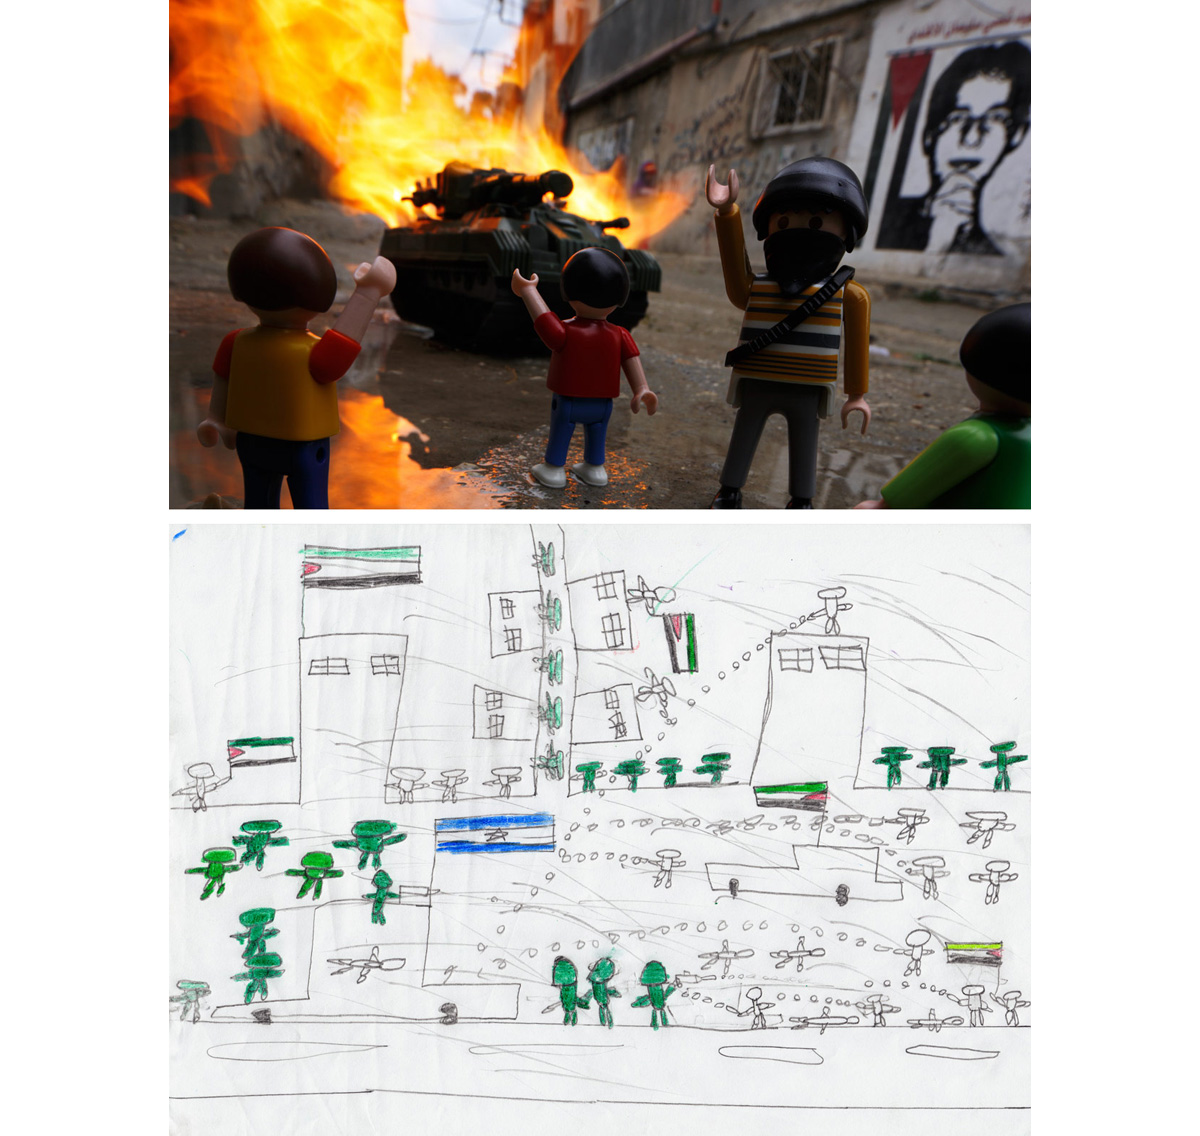 "Youth Resistance - Dheisheh Refugee Camp, West Bank2011""Asim"" dreamed of a youth resistance led by older peers to stop Israeli incursions into his camp outside of Bethlehem in the West Bank. He made an elaborate drawing showing groups of young refugees throwing stones at soldiers, tanks, and other vehicles. The mural in the background of the resulting photo is of 17-year-old camp martyr Qusai Alafandi. He was killed on 28 January 2008 after throwing a Molotov cocktail at Israeli Defense Forces inside the Dheisheh Refugee Camp."